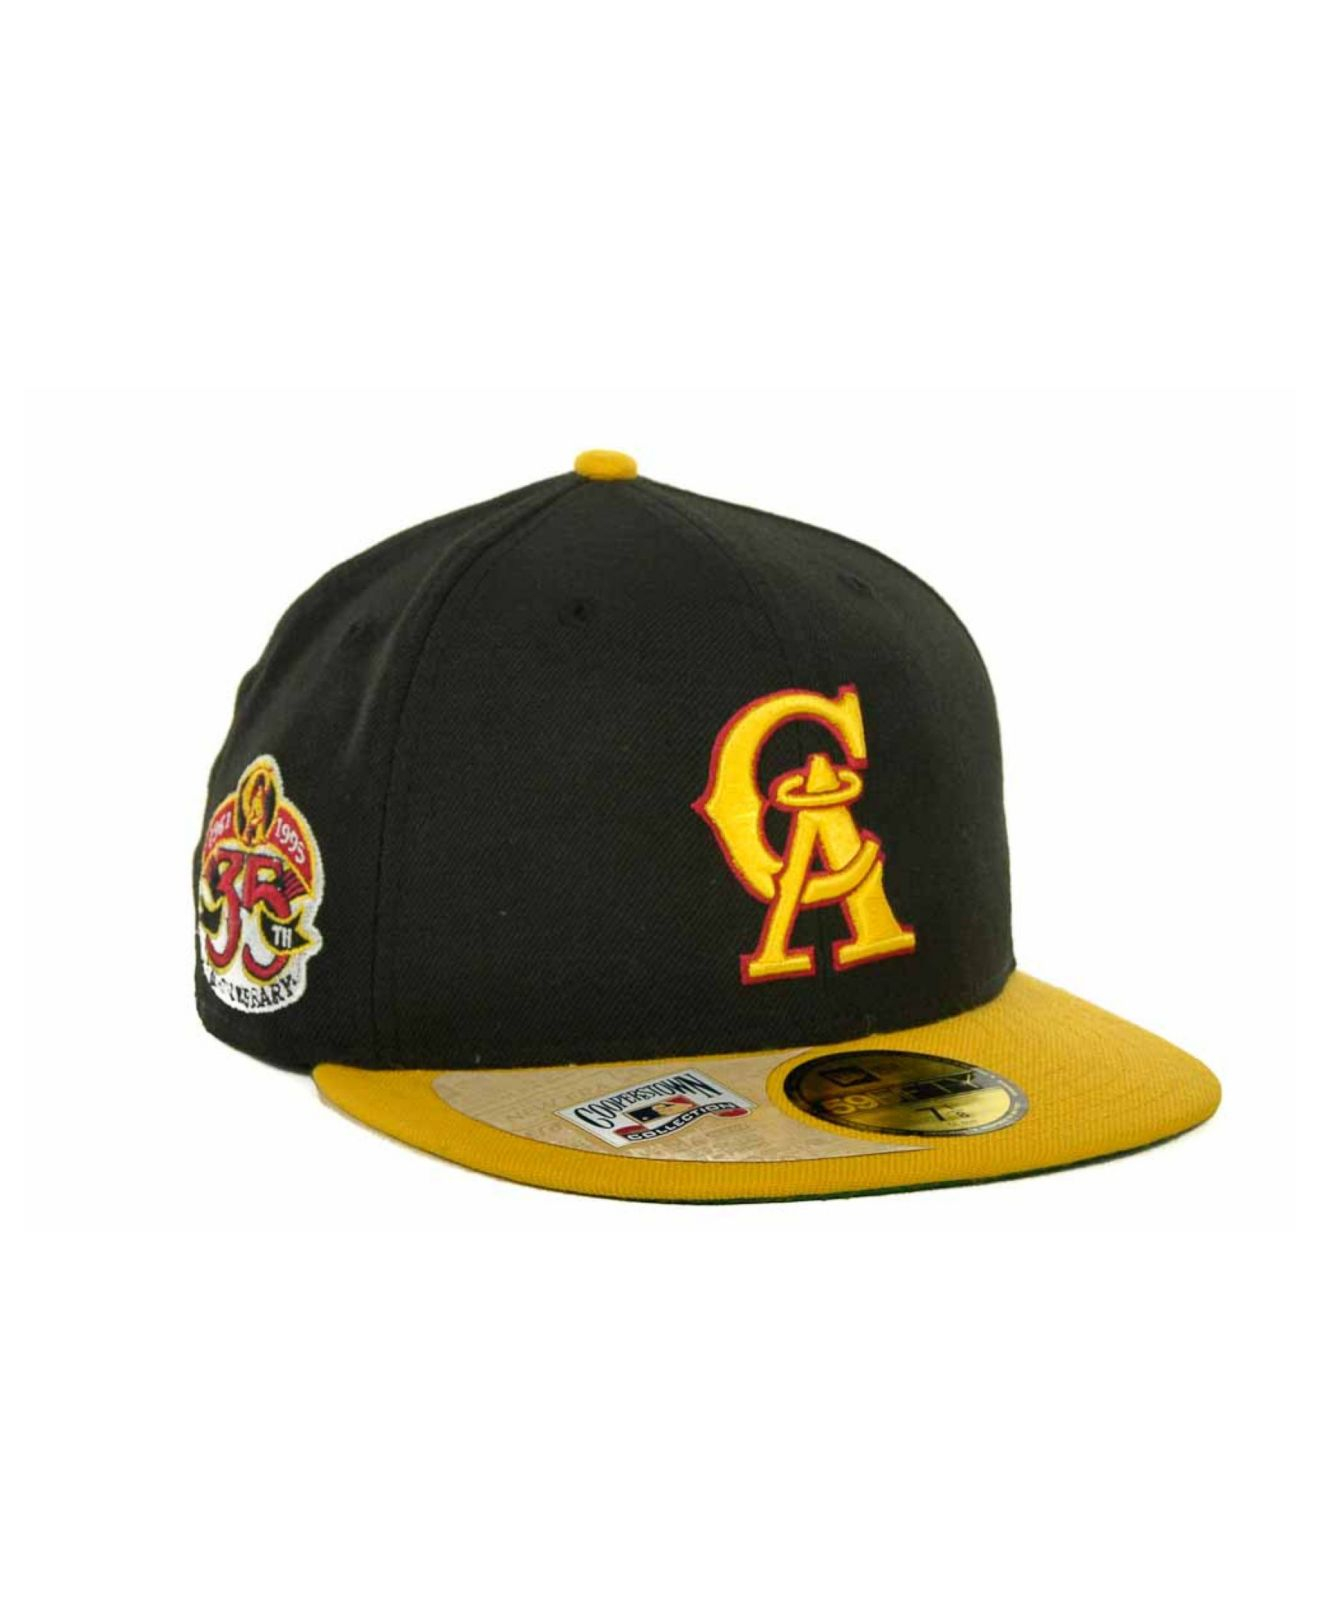 c7cb23aaad45d2 ... cap 5950 fitted navy blue 1997 cooperstown mlb b5146 ebb8c 45643;  amazon lyst ktz los angeles angels of anaheim cooperstown patch 59fifty  fa39d f79dc